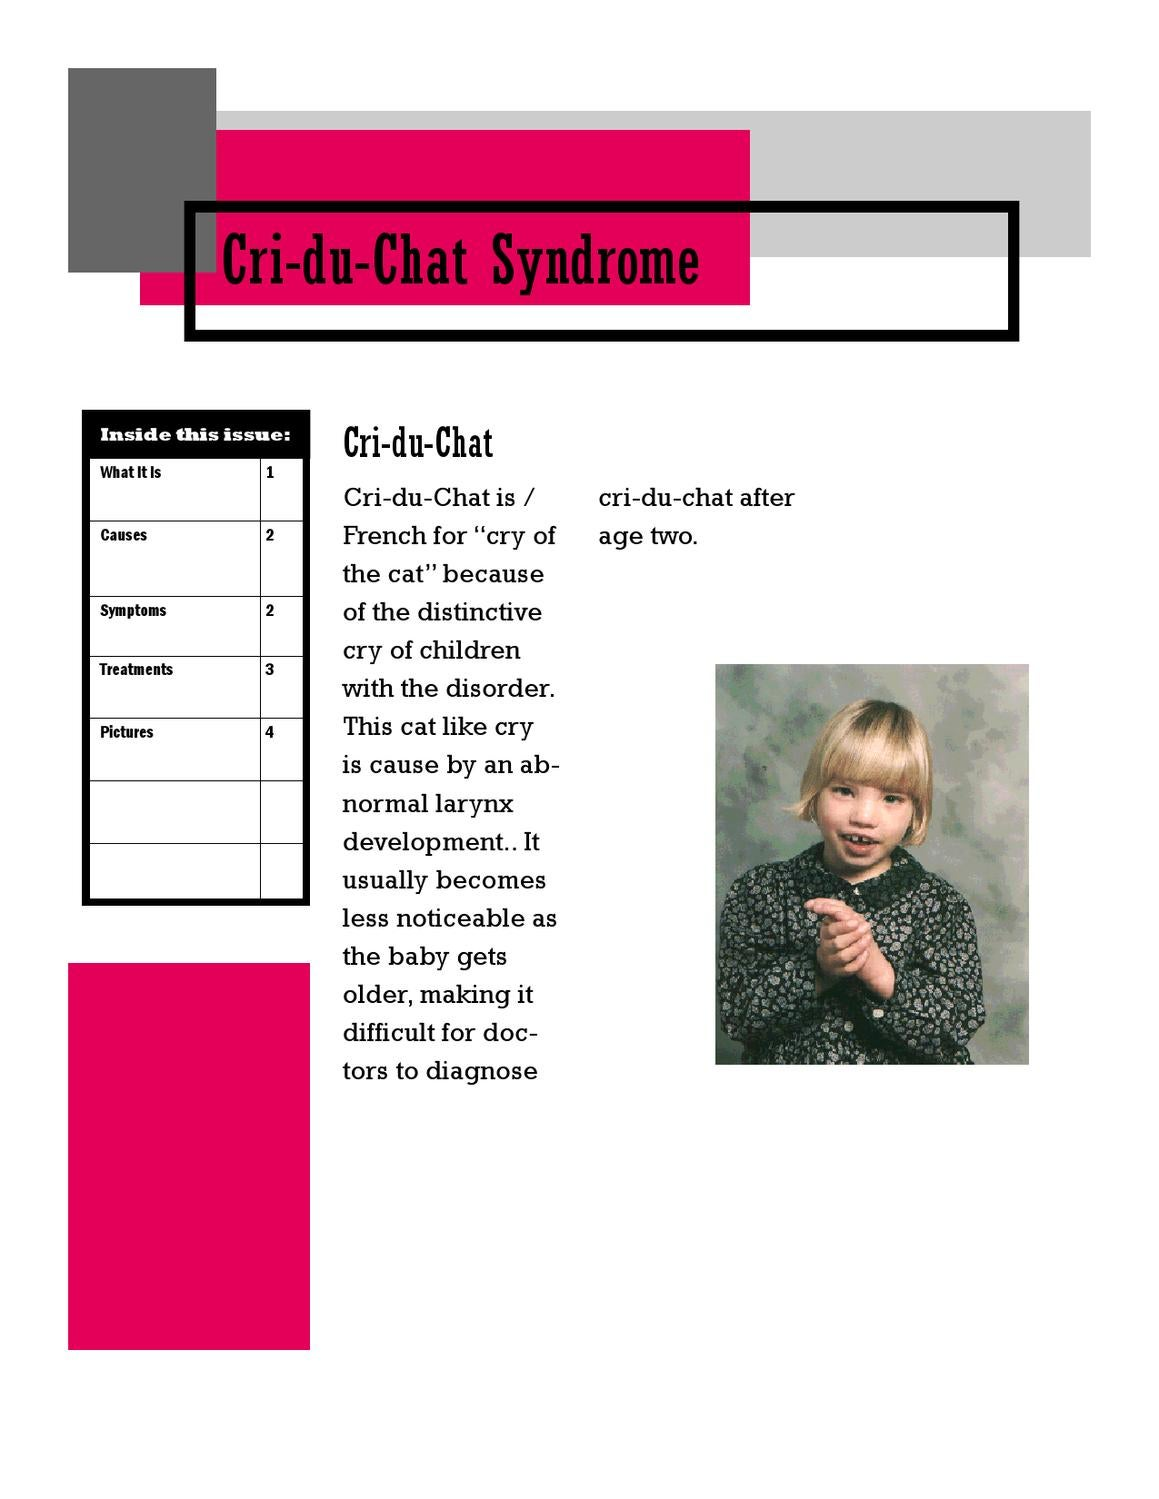 cri-du-chat jondalyn zortorres by shades valley hs library - issuu